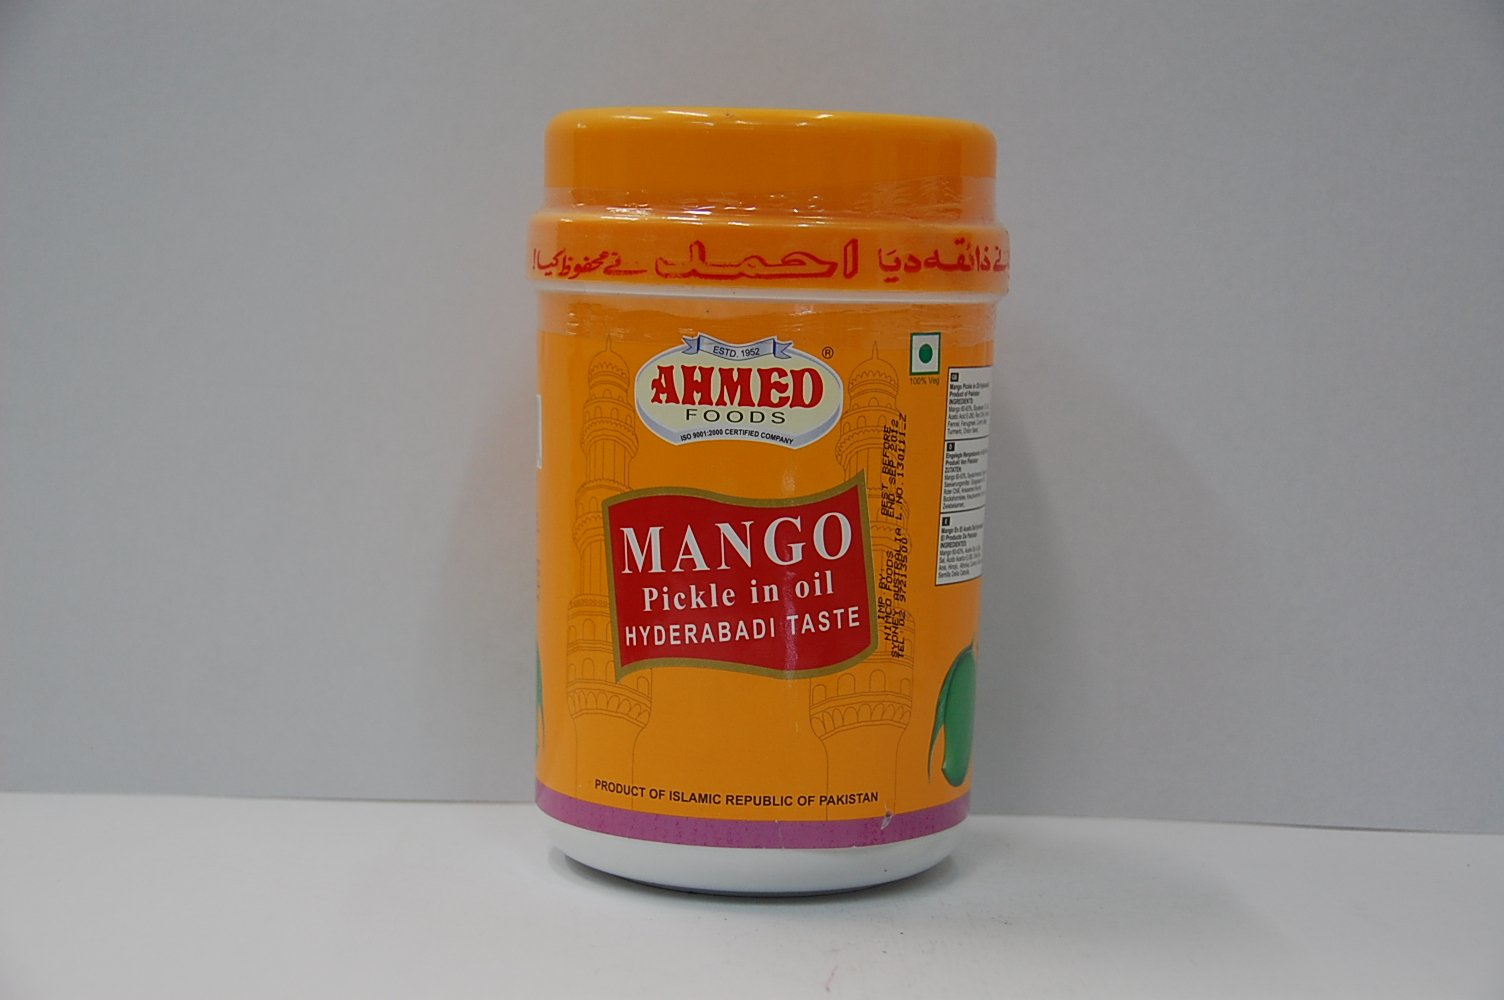 Ahmed Mango Pickle 35.27 oz by AHMED FOODS